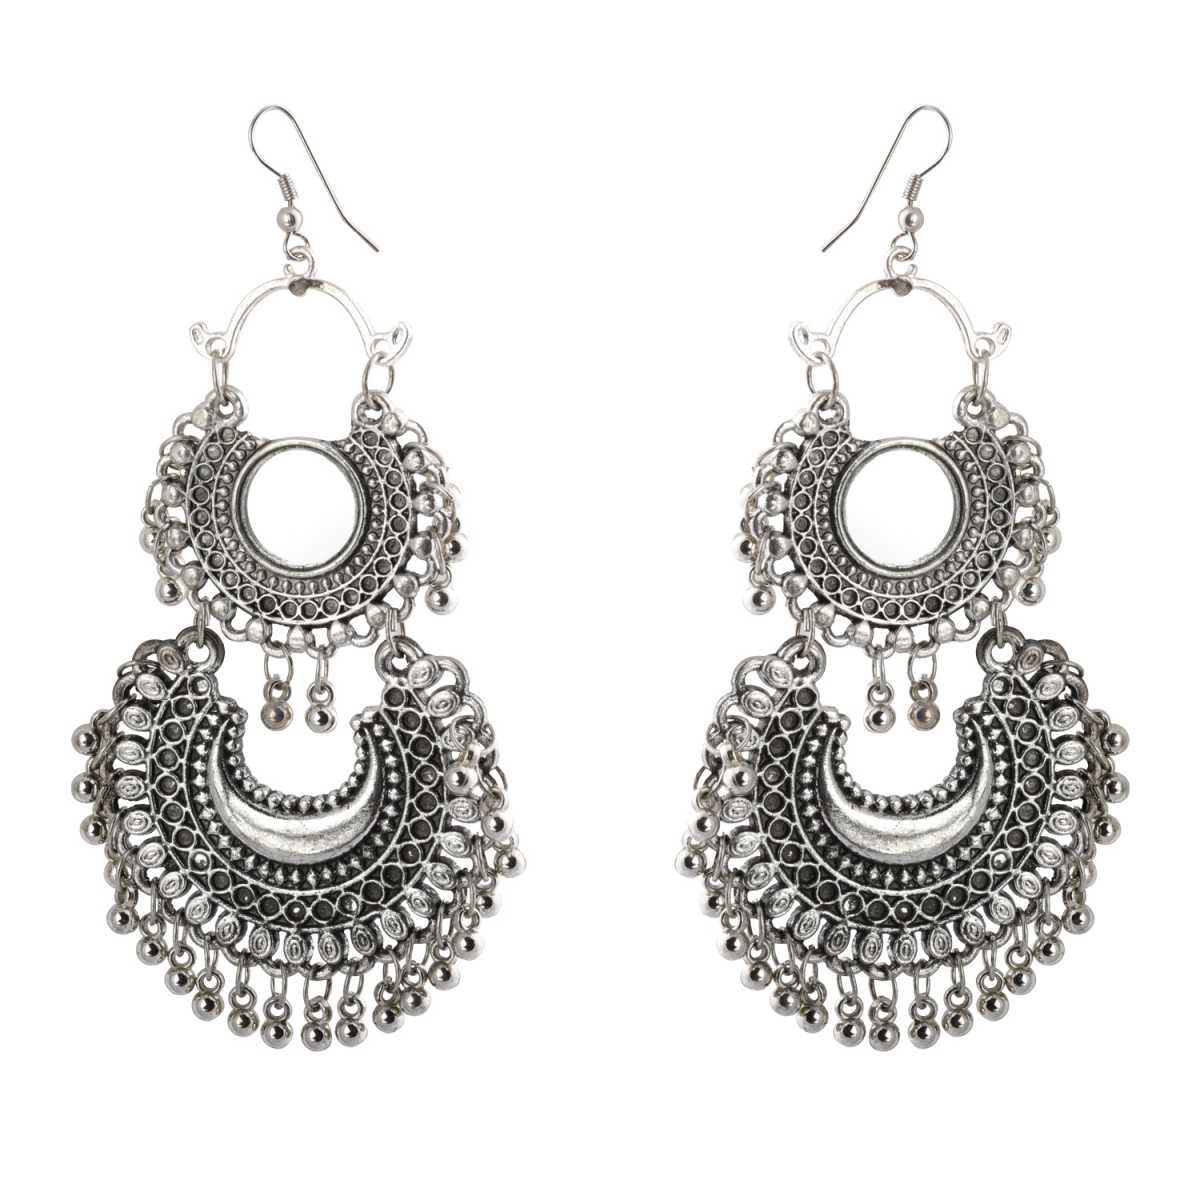 Silver Shine Stunning Silver Chandbali Mirror Small Dangler Earrings for Women